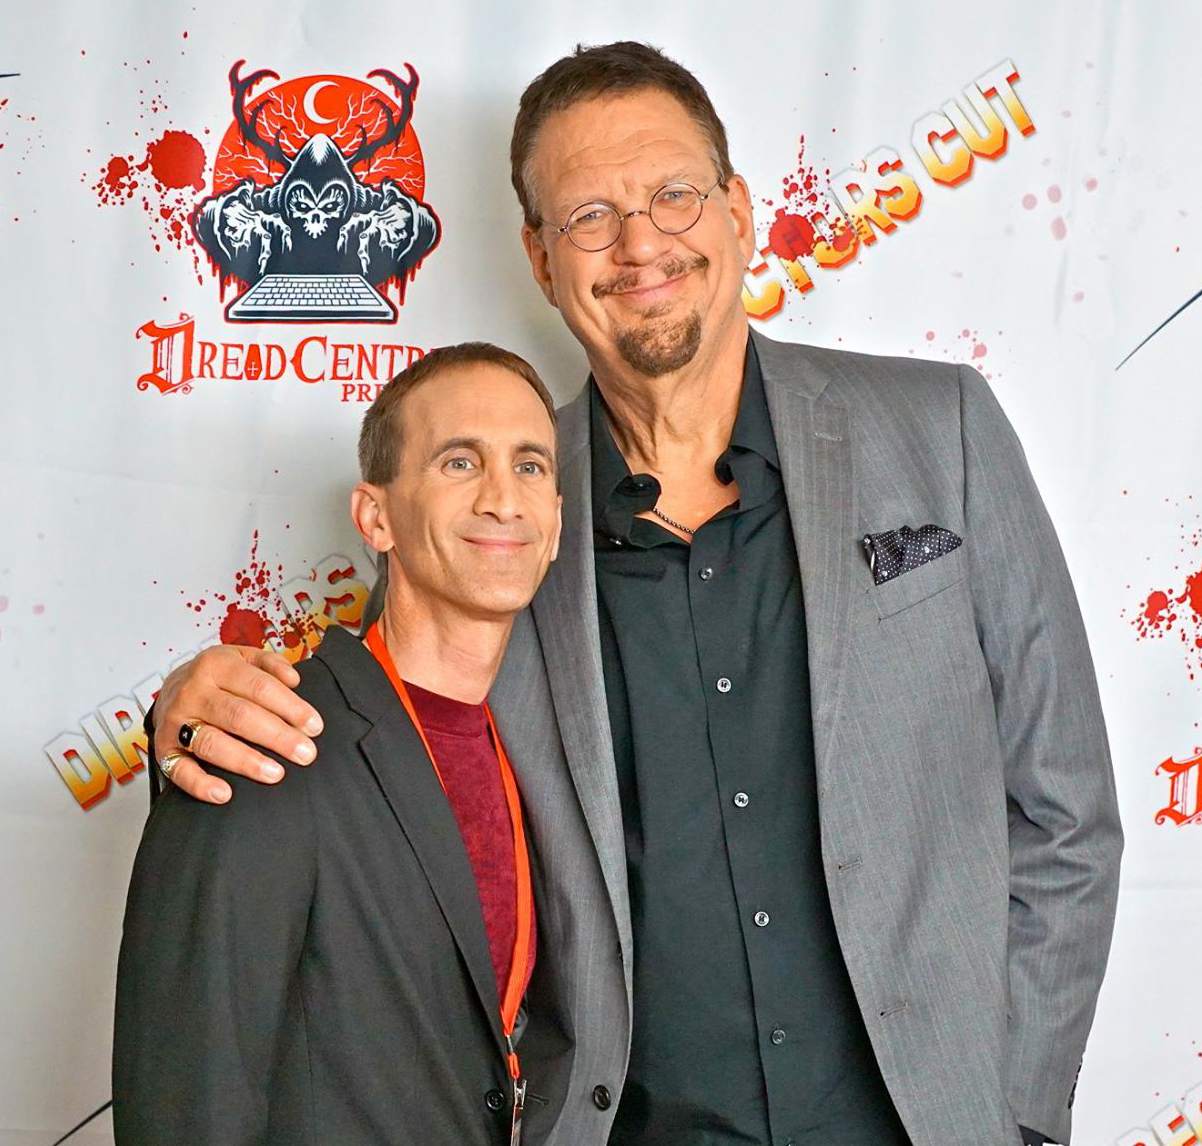 With Penn Jillette on the red carpet at the L.A. premiere of Director's Cut.